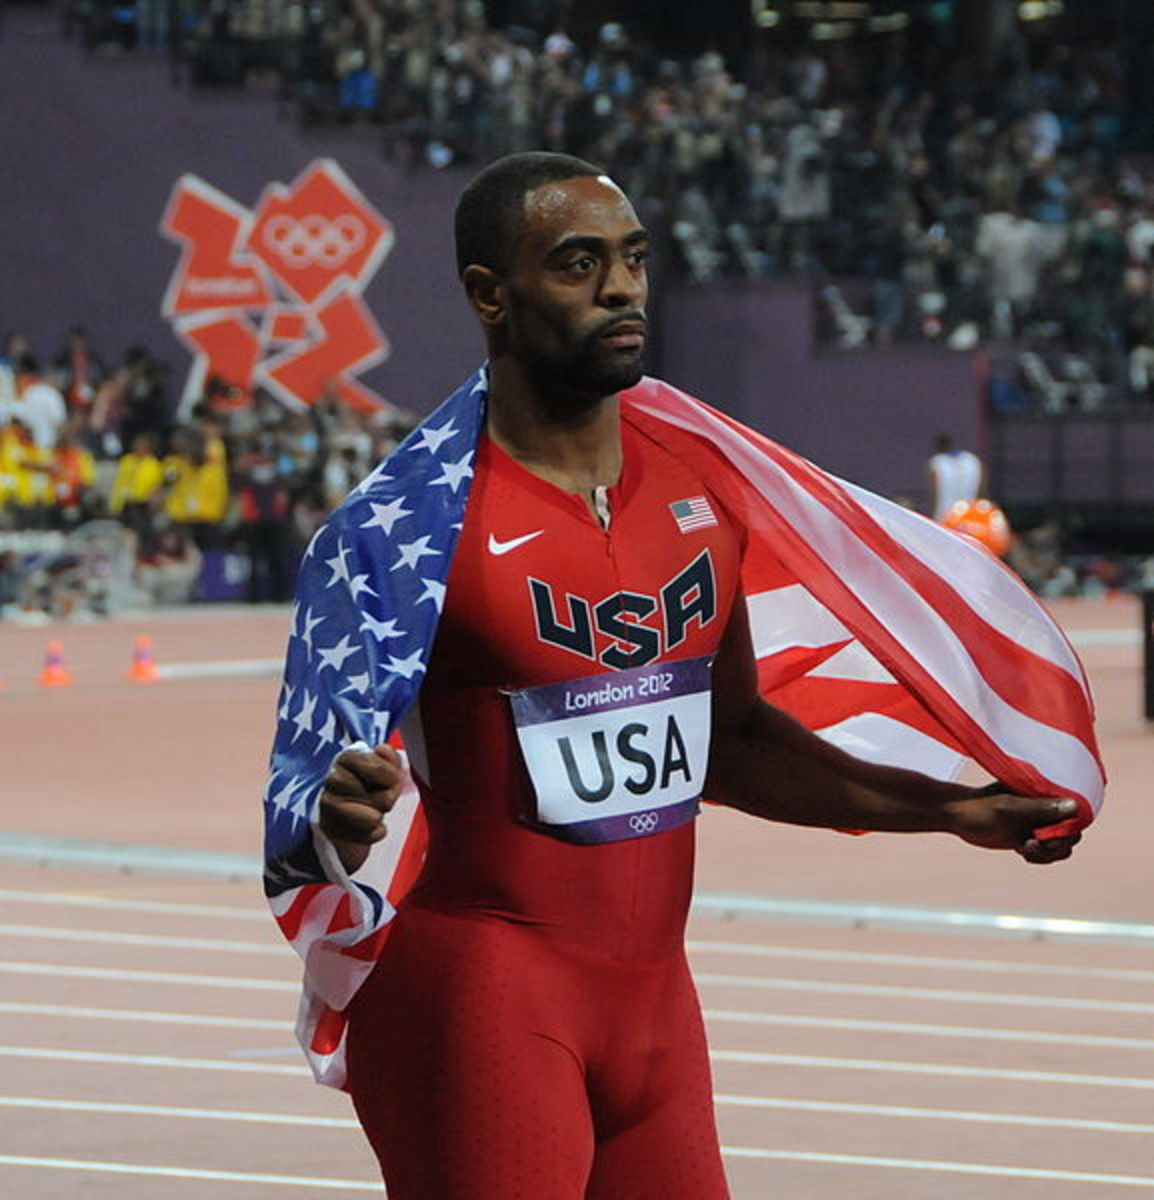 Tyson Gay holds the American record for the 100 meters.